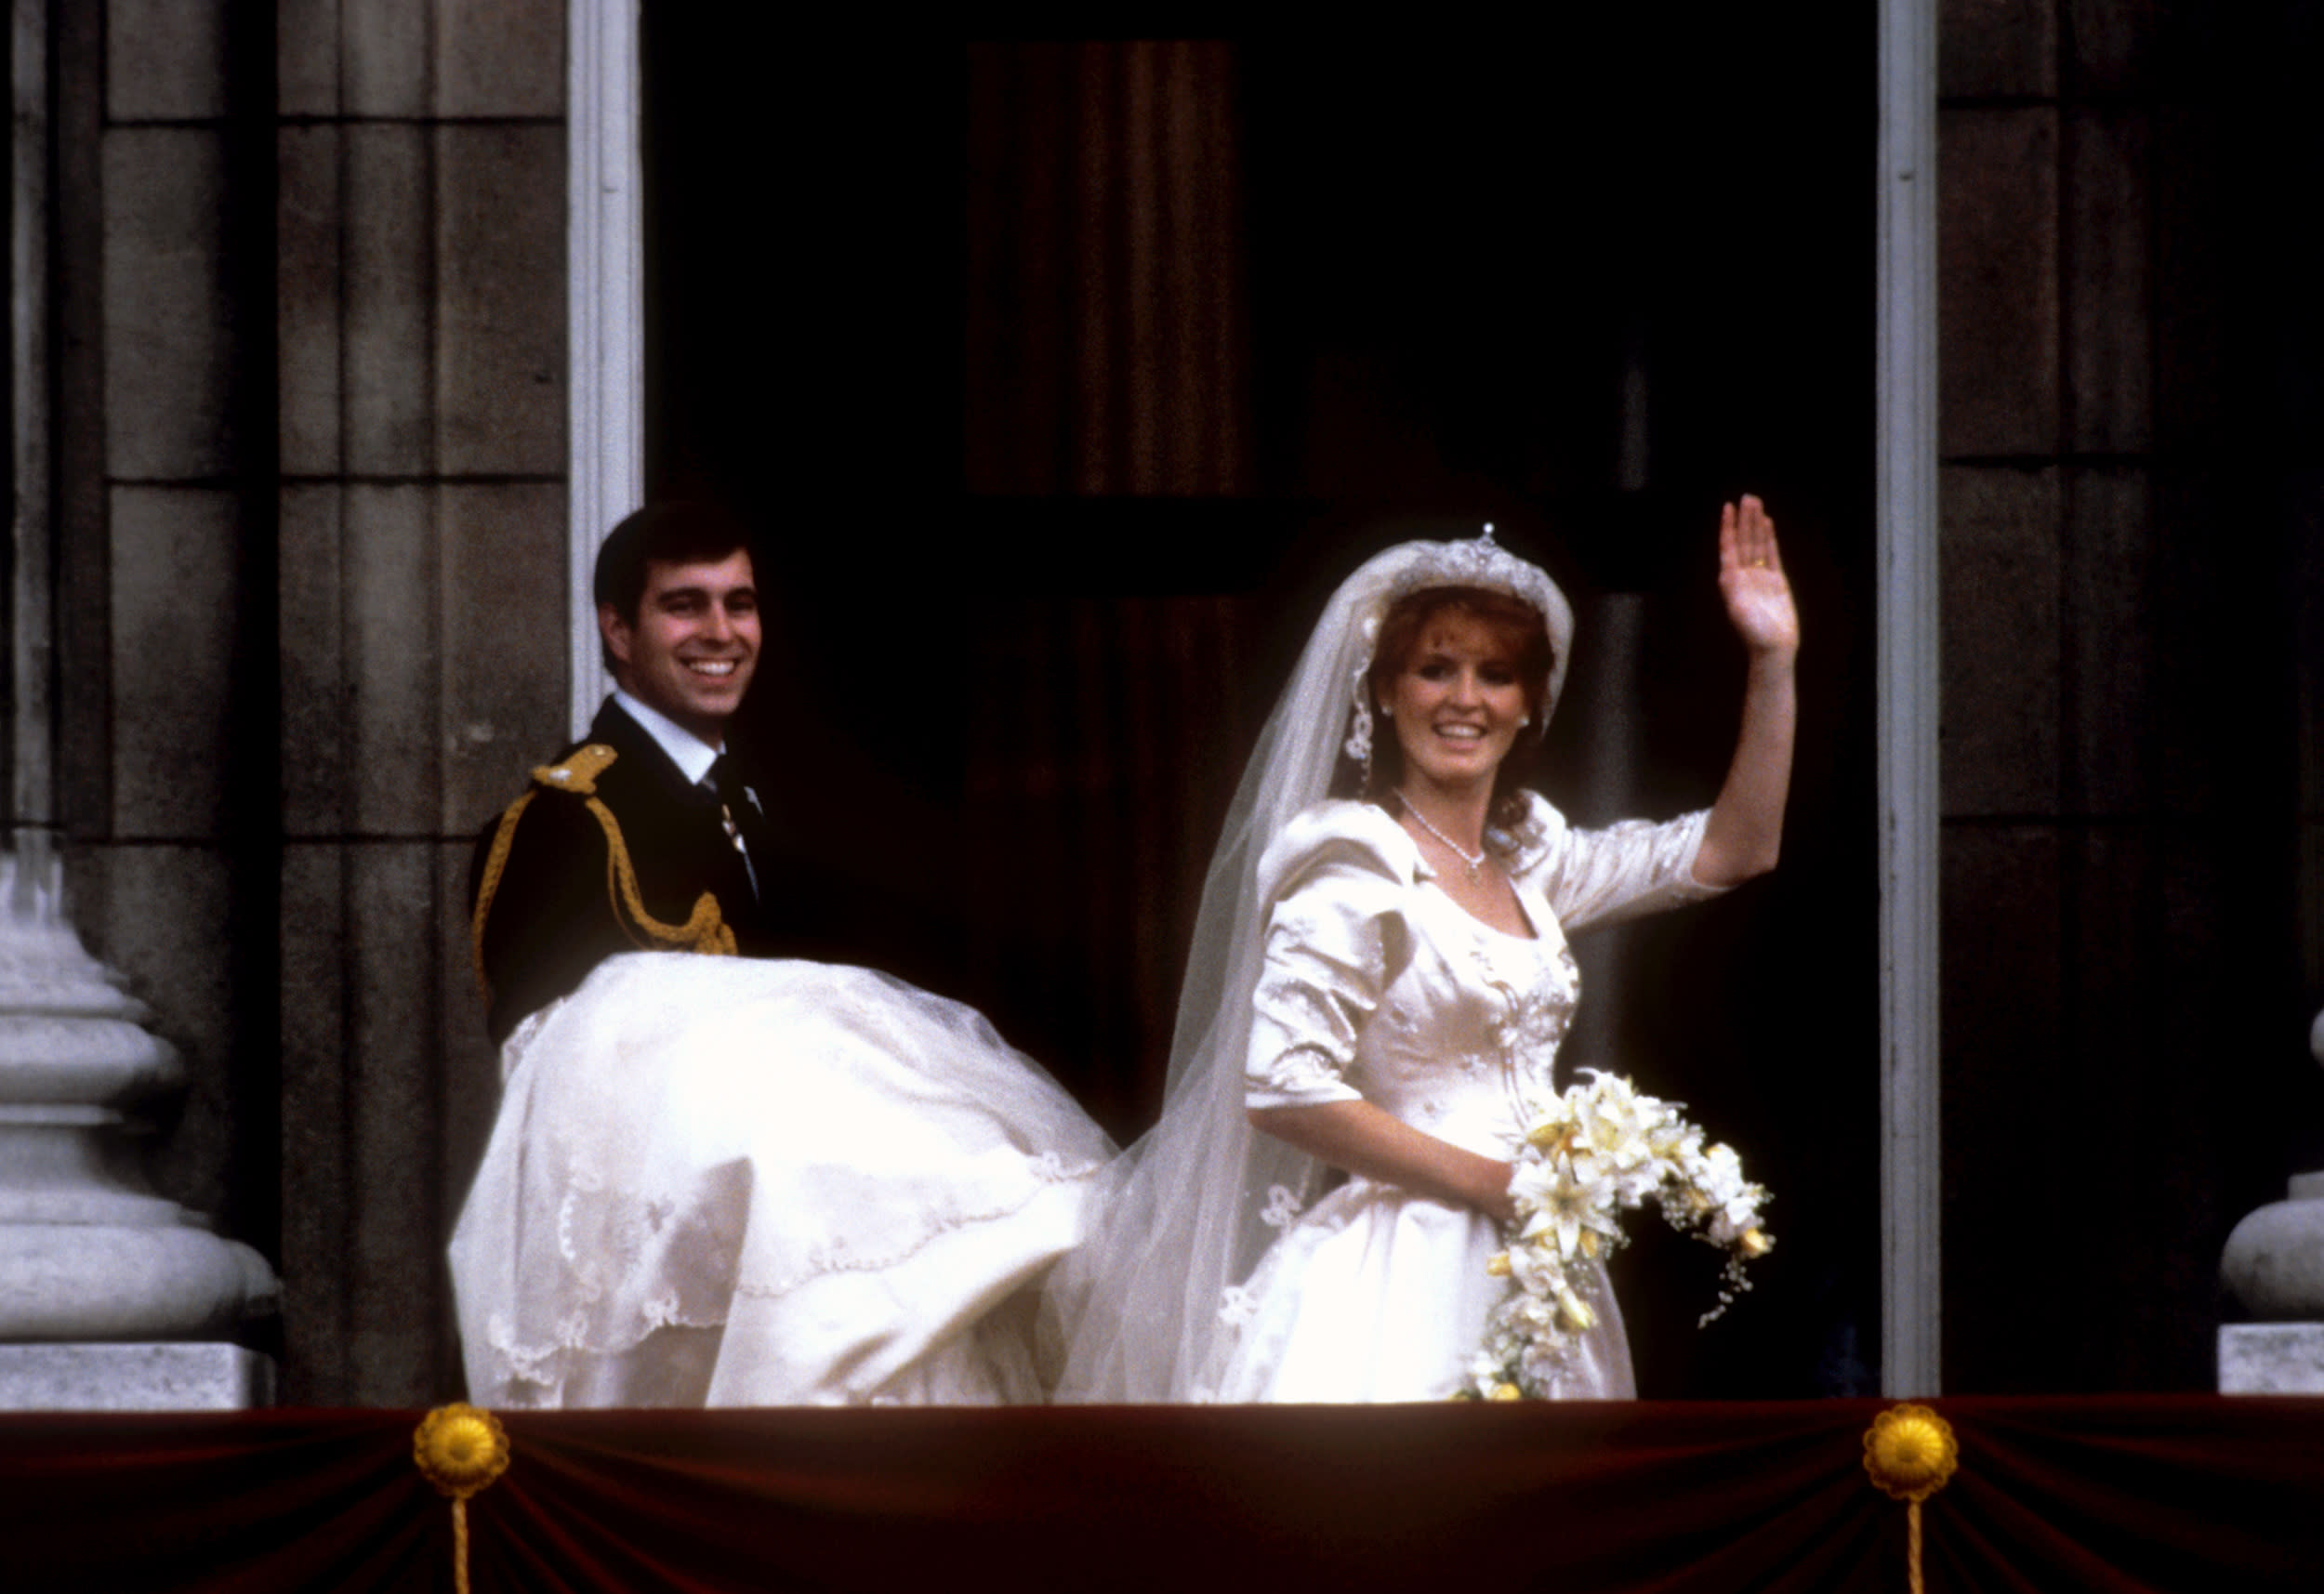 The newly created Duke of York and Duchess of York wave from the balcony of Buckingham Palace after their marriage at Westminster Abbey.